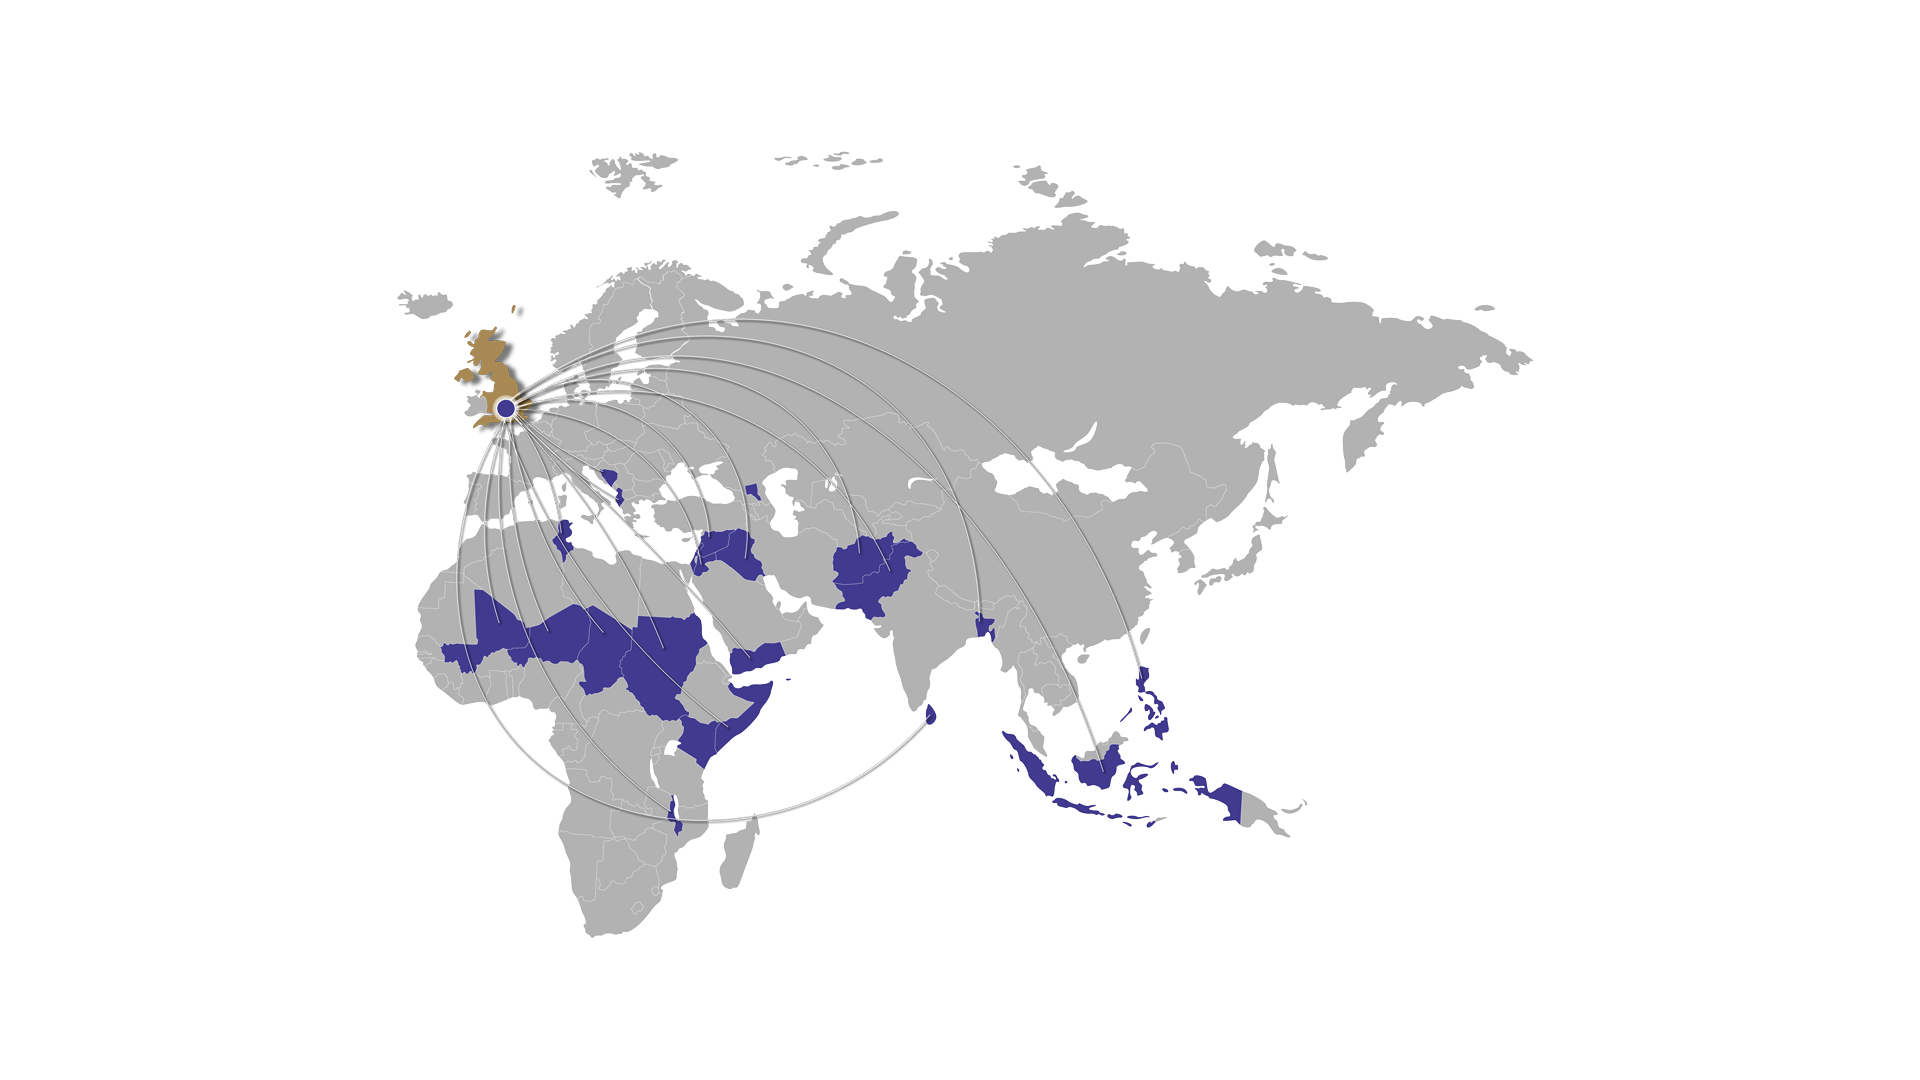 the world map with some highlighted countries like UK on the top